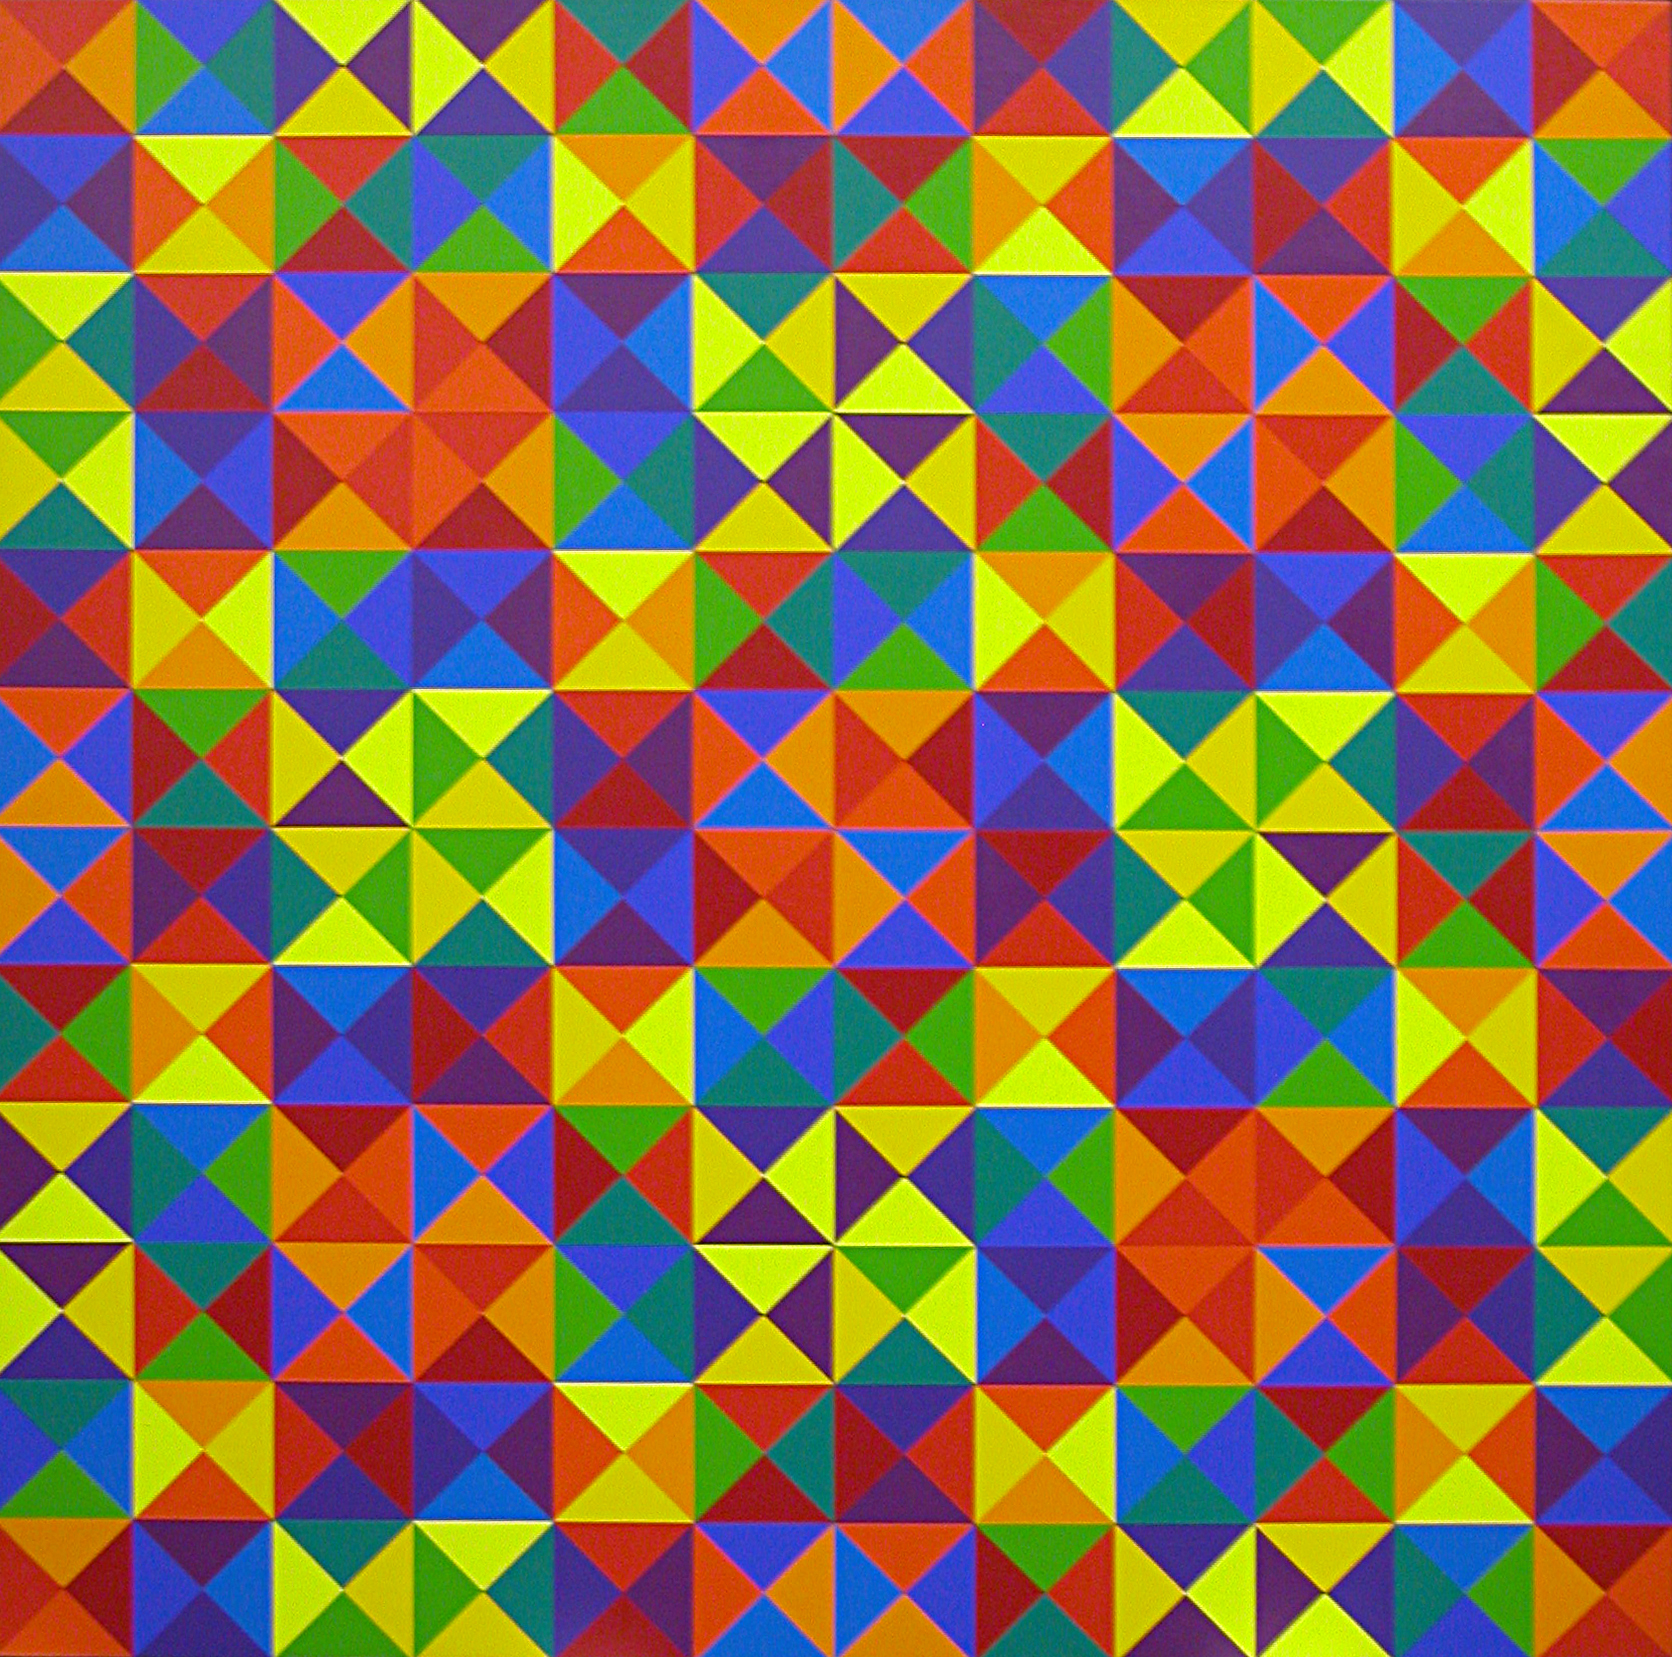 #9 , 1969  oil on canvas 68 x 68 inches; 175.3 x 175.3 centimeters